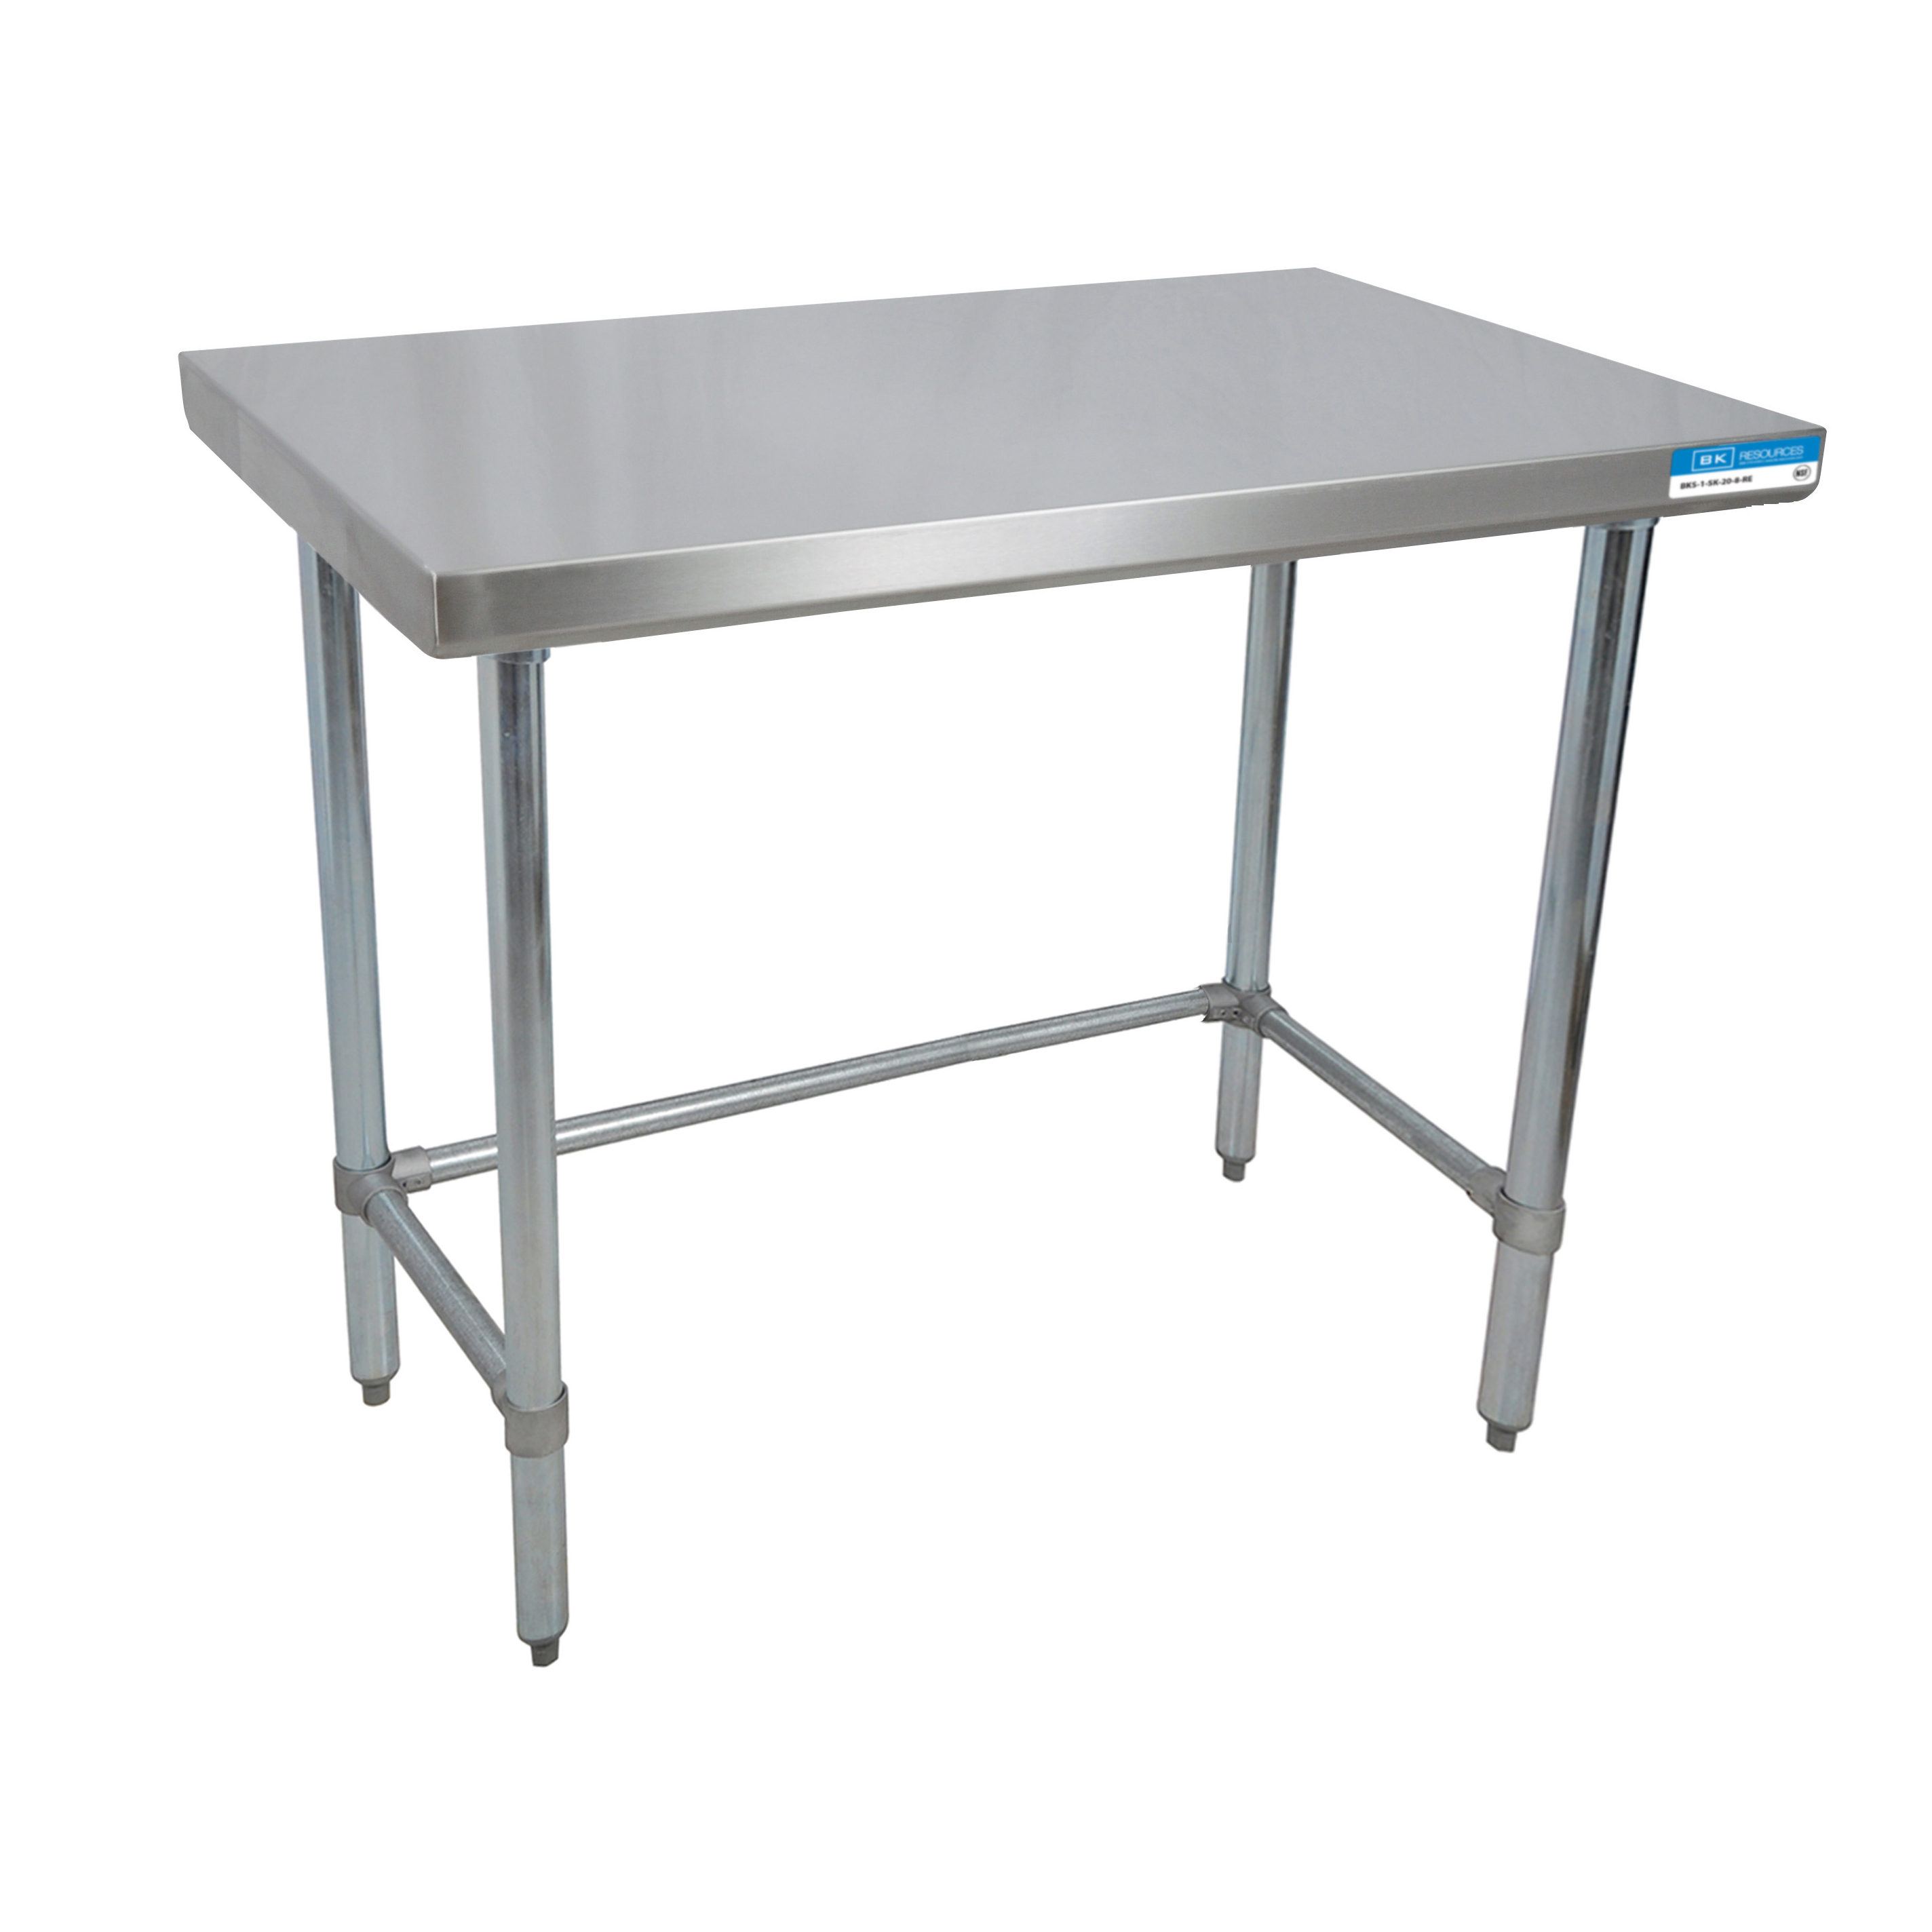 BK Resources QVTOB-3624 work table,  36